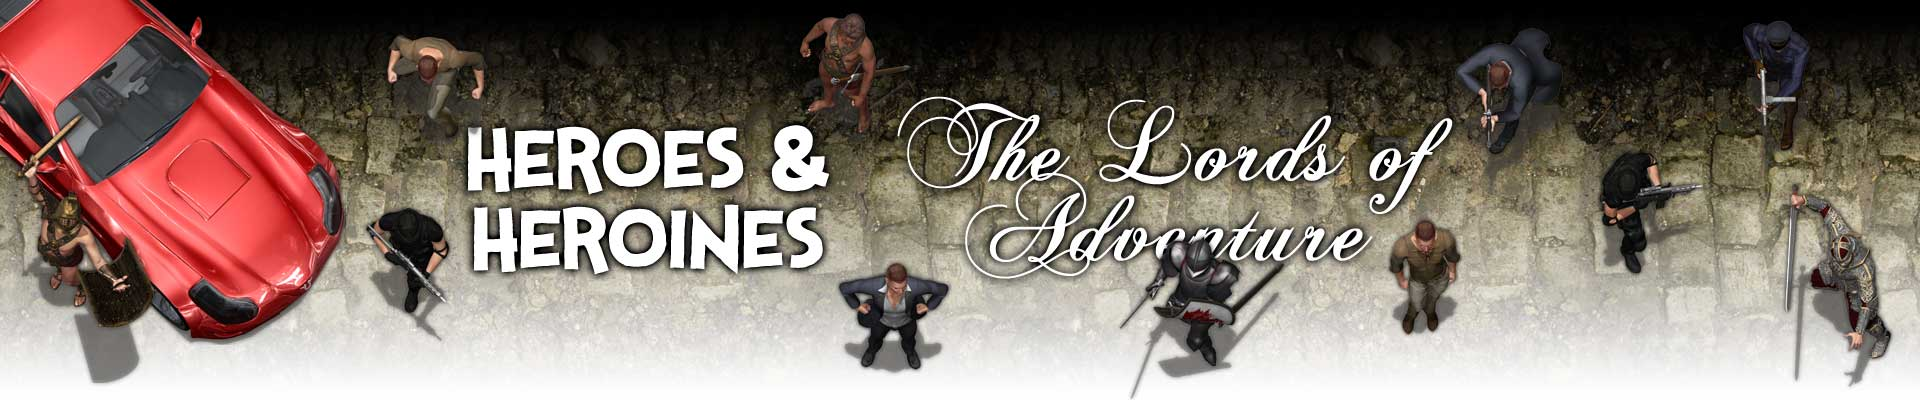 The Lords of Adventure